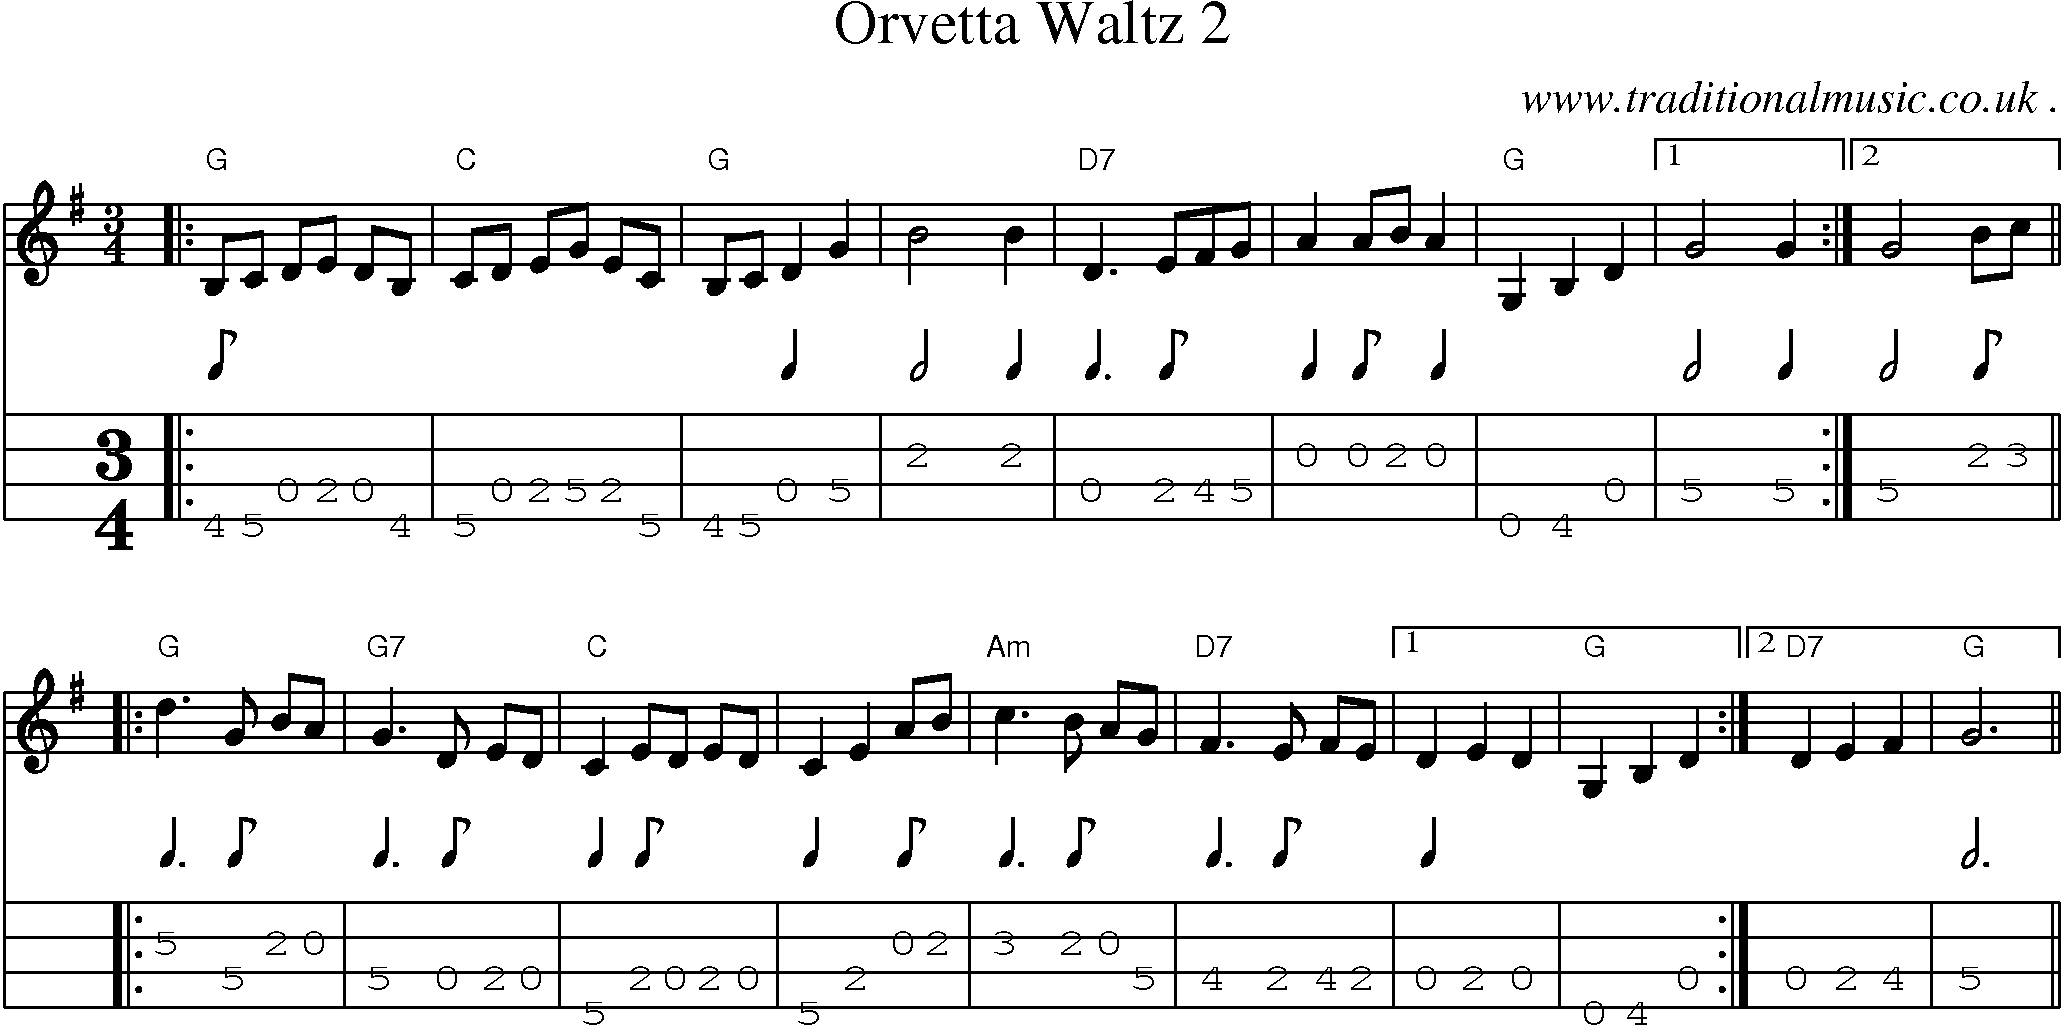 American Old-time music, Scores and Tabs for Mandolin - Orvetta Waltz 2